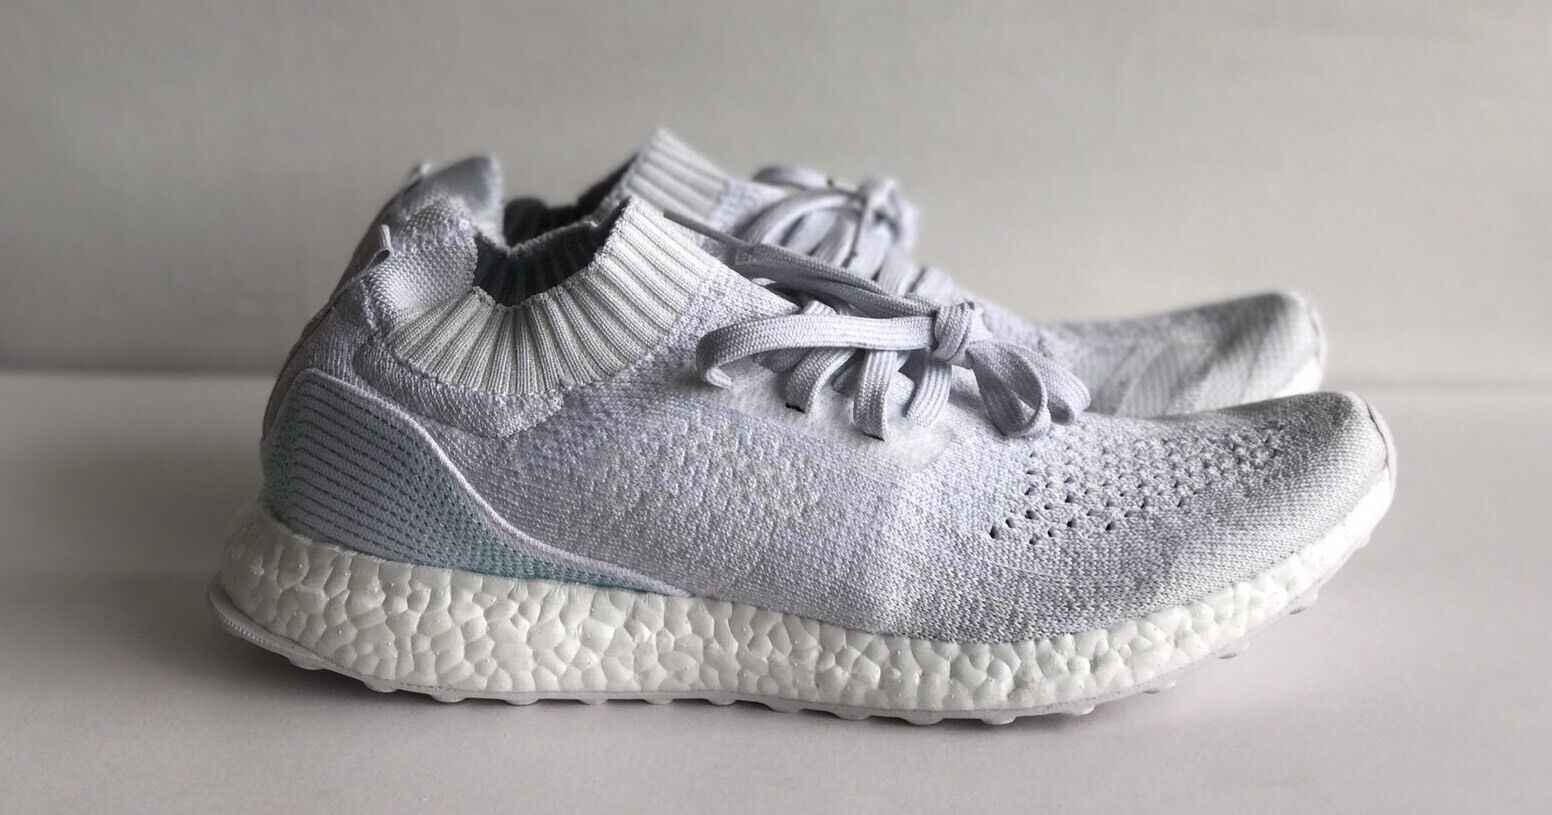 ADIDAS X PEARLY UNCAGED ULTRA BOOST TRAINERS9.5 US 10